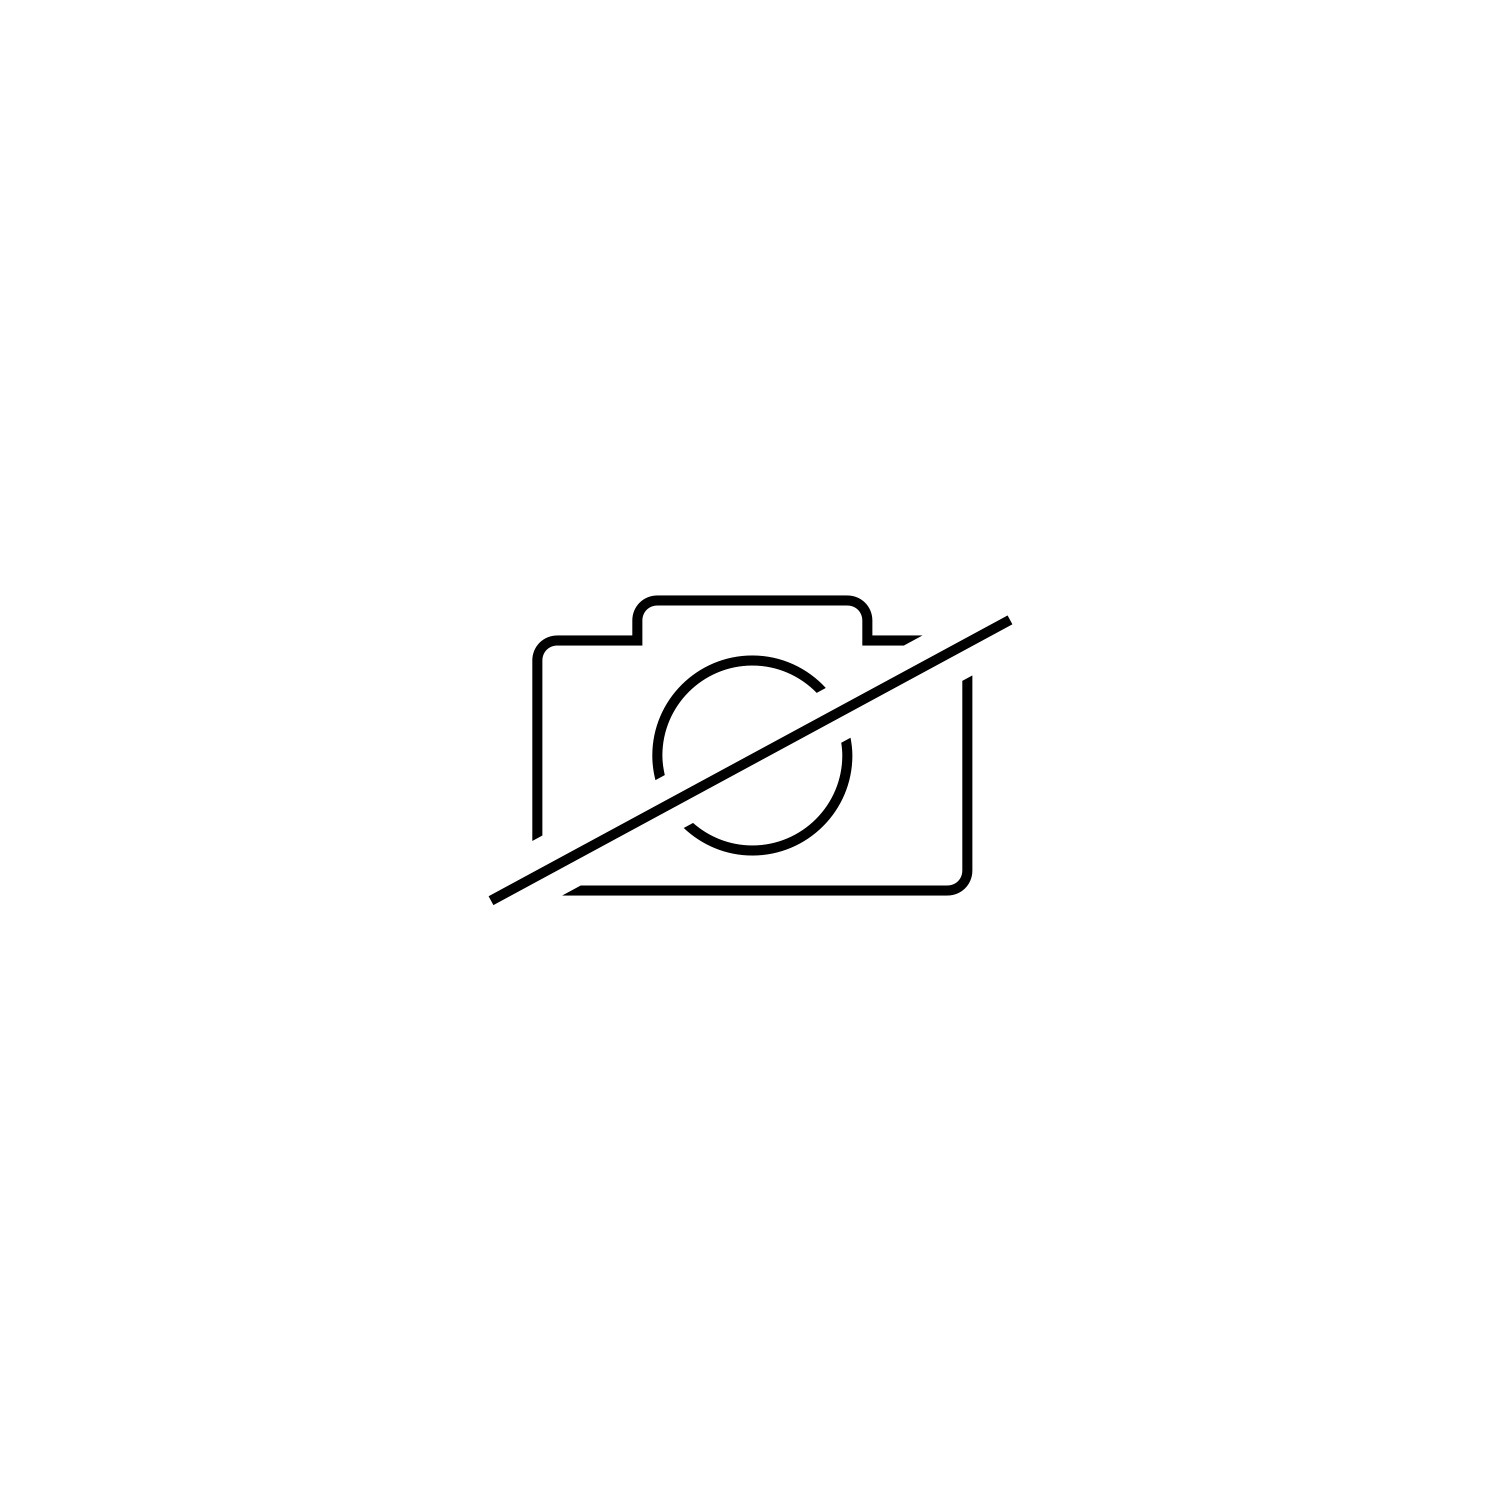 Audi e-tron USB-stick, Antigua Blue, 32 GB